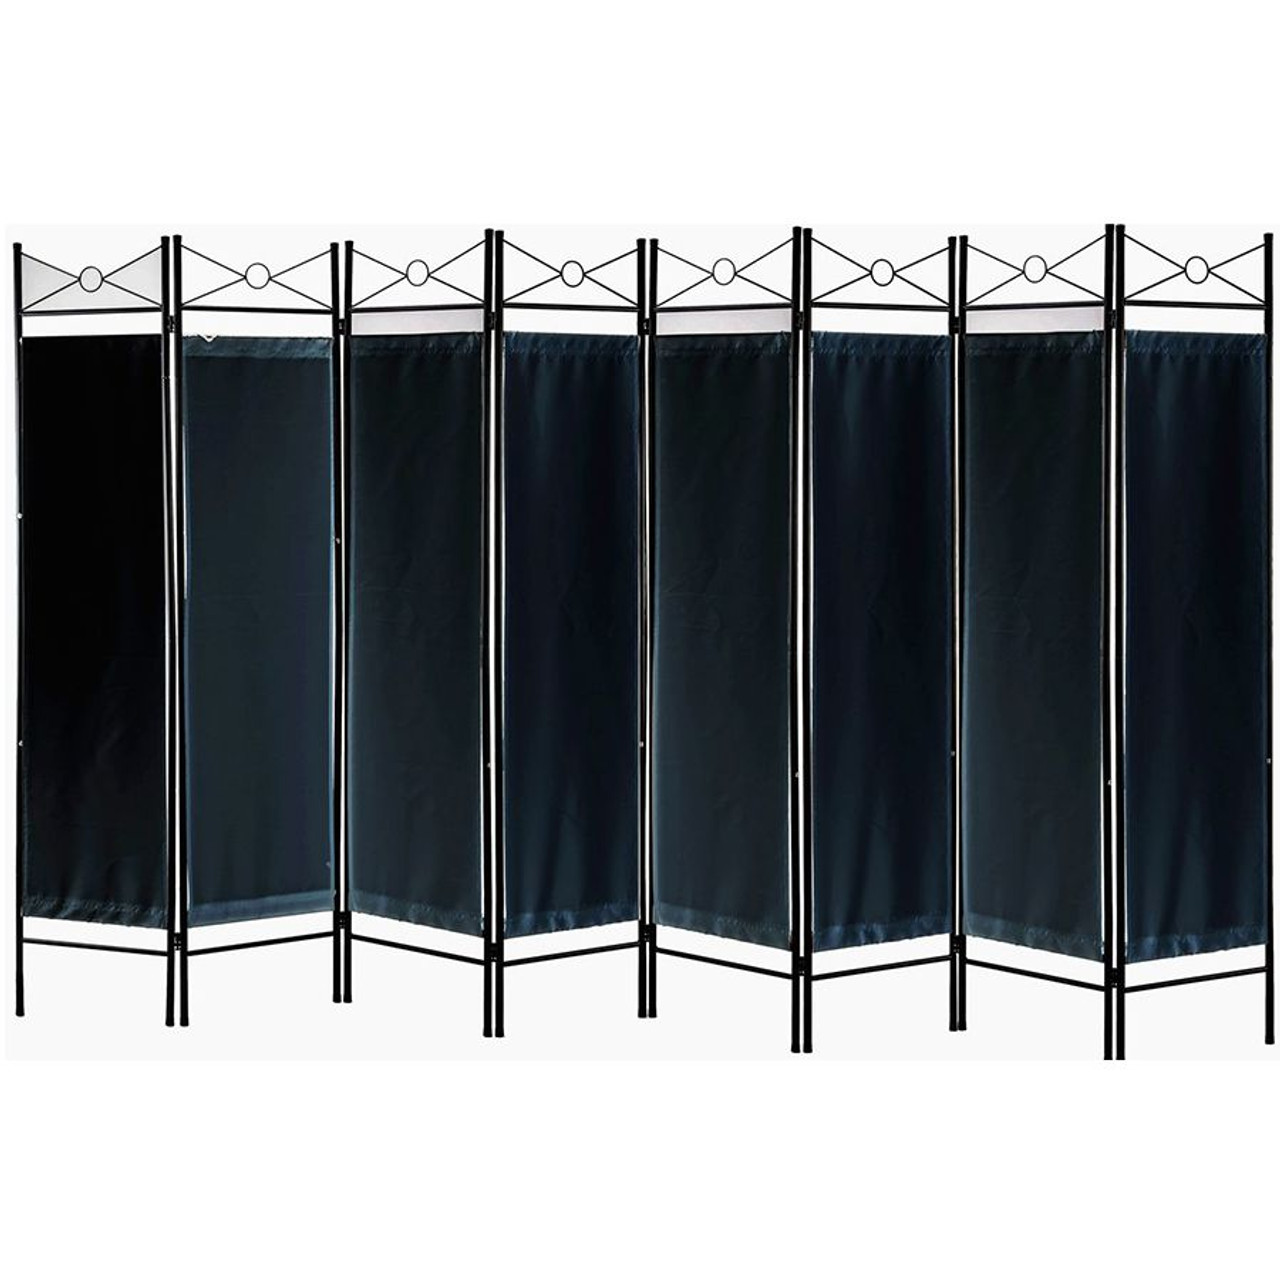 Metal Room Divider Privacy Screen With Removable Fabric Black Color Legacy Decor